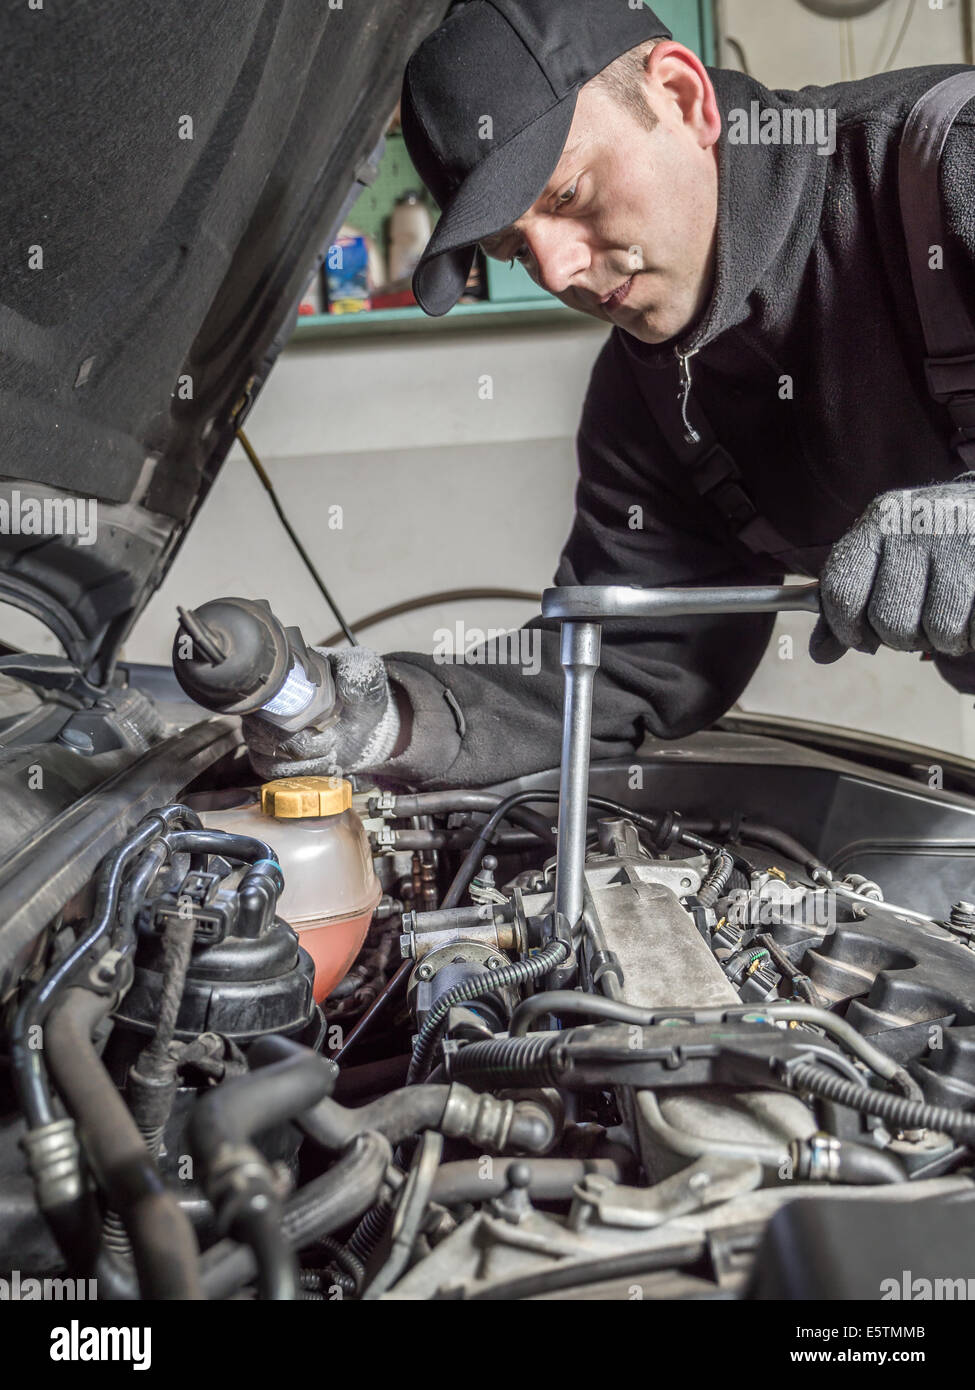 Auto mechanic replacing glow plugs in car diesel engine using spark plug spanner - Stock Image